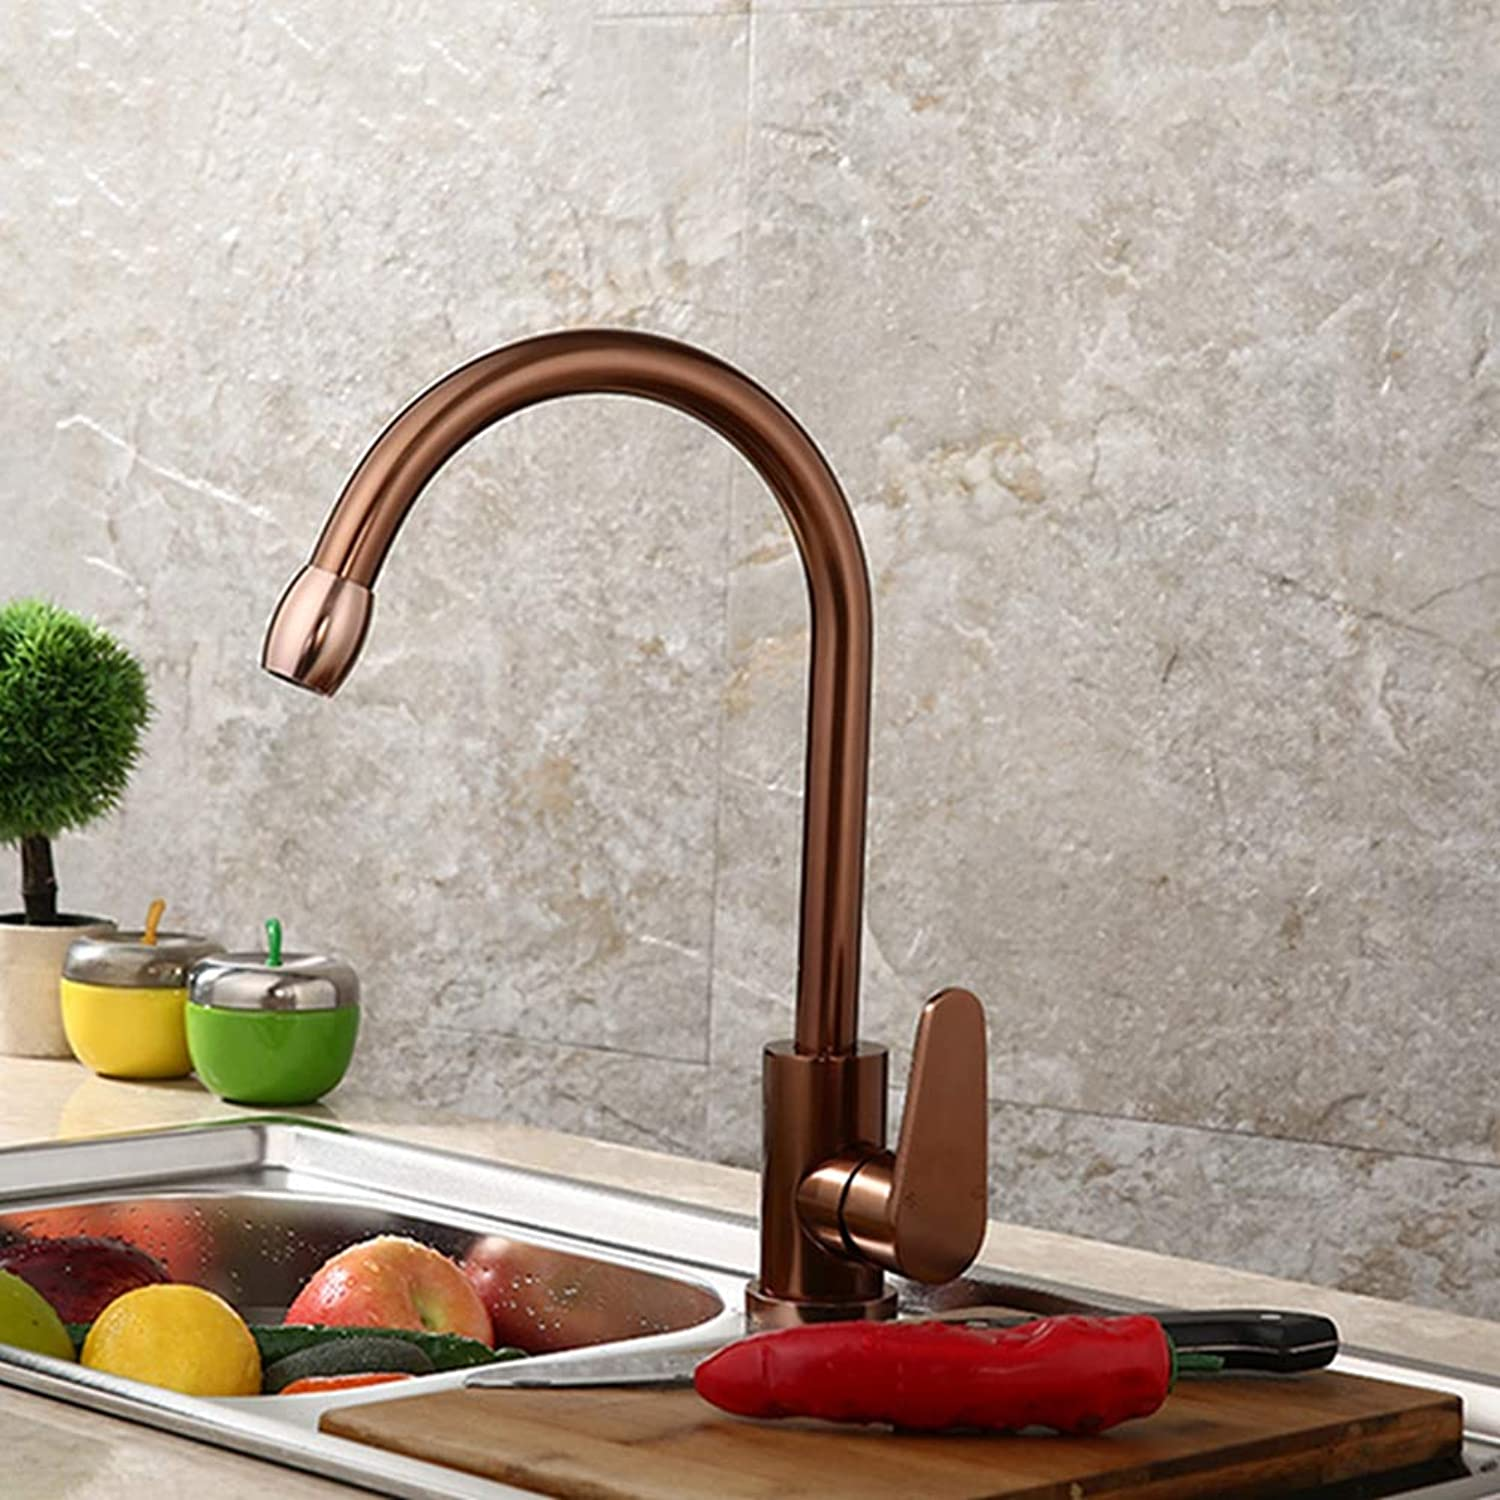 FZHLR pink gold Space Aluminum Kitchen Faucet Vegetable Washing Basin Sink Water Cold Hot Water Tap Mixer Single Handle 360 Degree Swivel